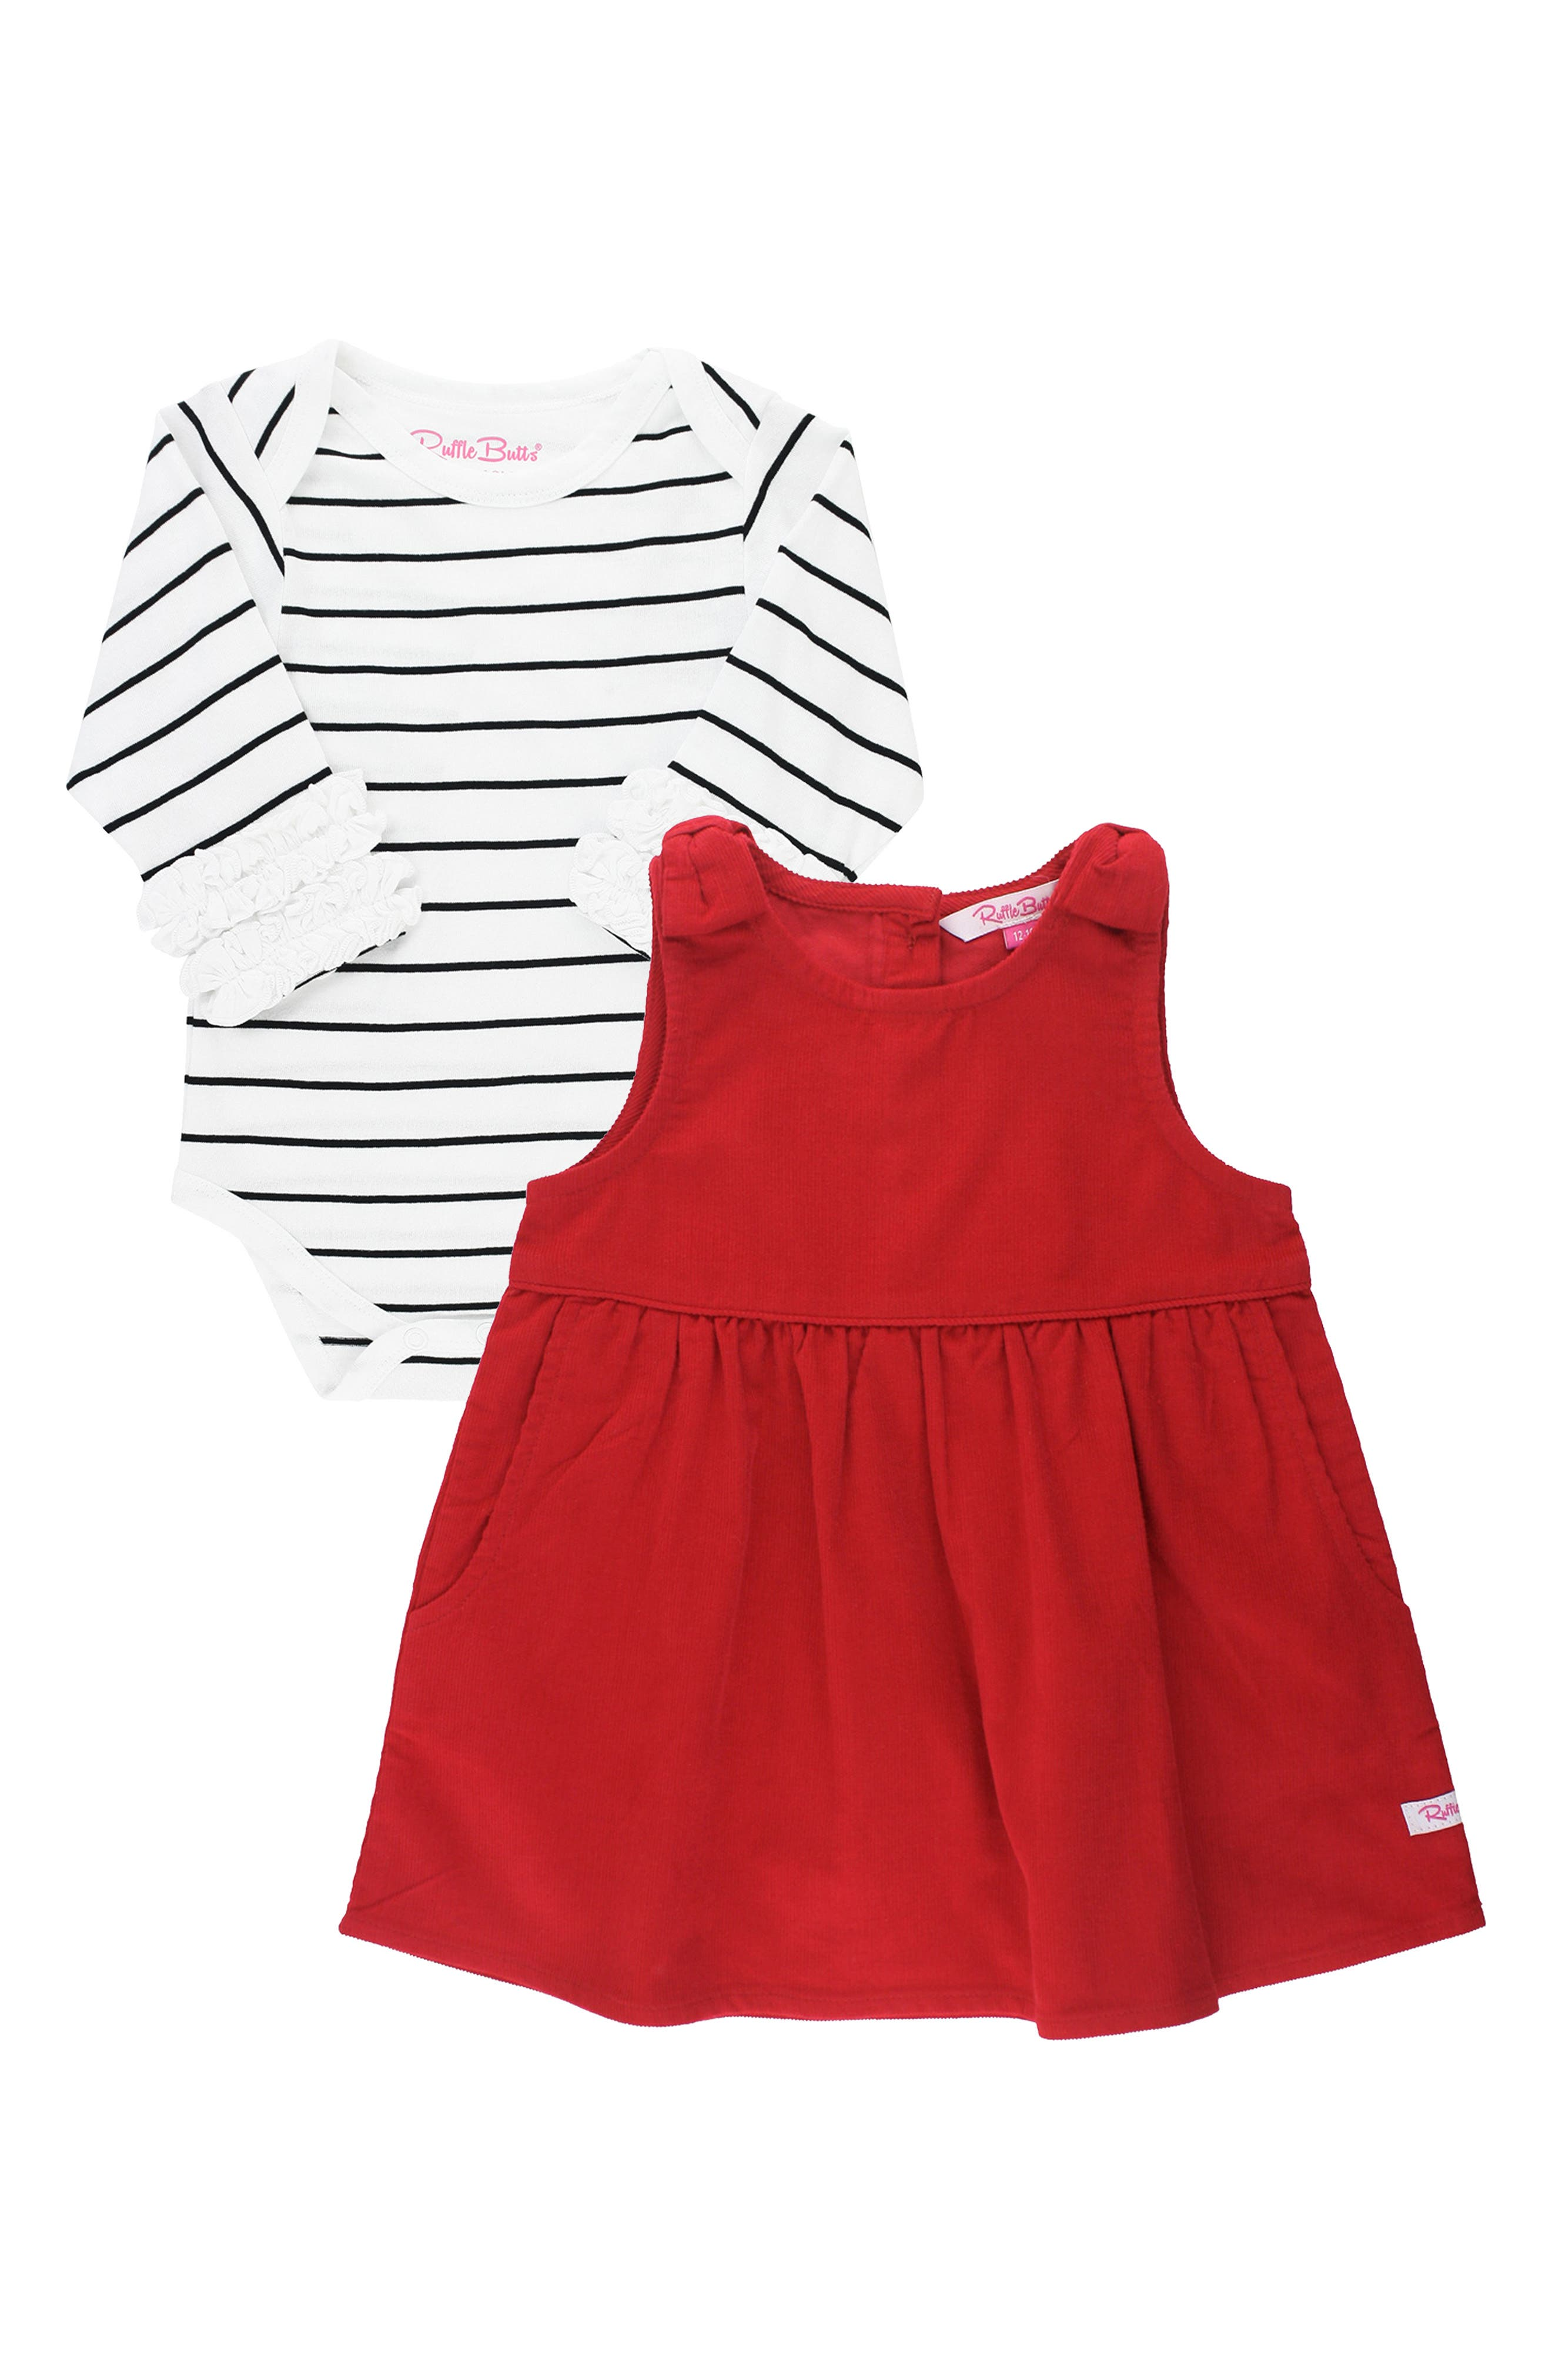 Ruffle trim marks the cuffs of a crisply striped bodysuit paired with a bright red bow-embellished dress. Style Name: Rufflebutts Dress & Stripe Bodysuit Set (Baby). Style Number: 6095672. Available in stores.